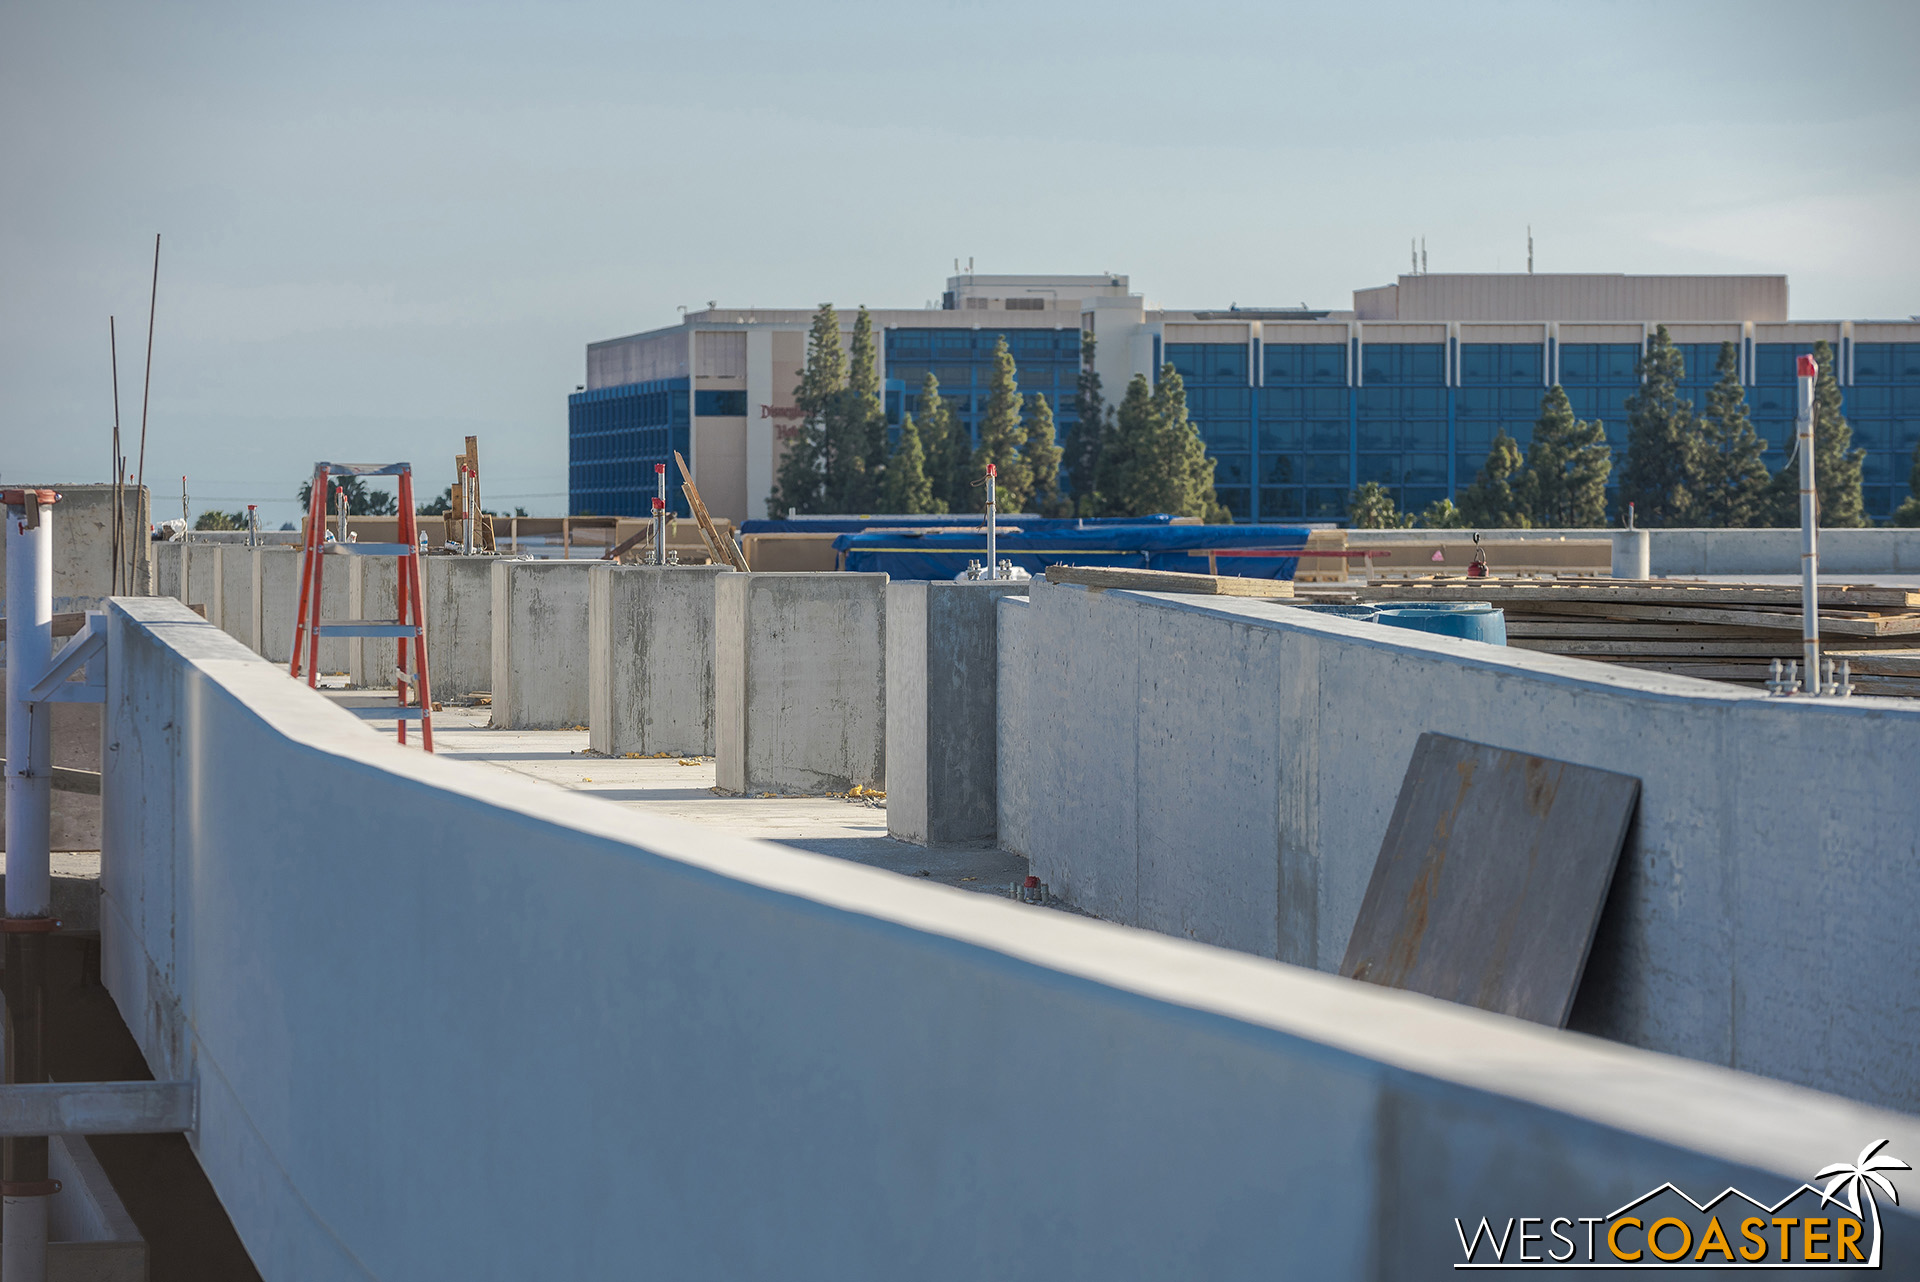 Gazing across the top level, these concrete plinths have been cast as part of pedestrian barrier protection.